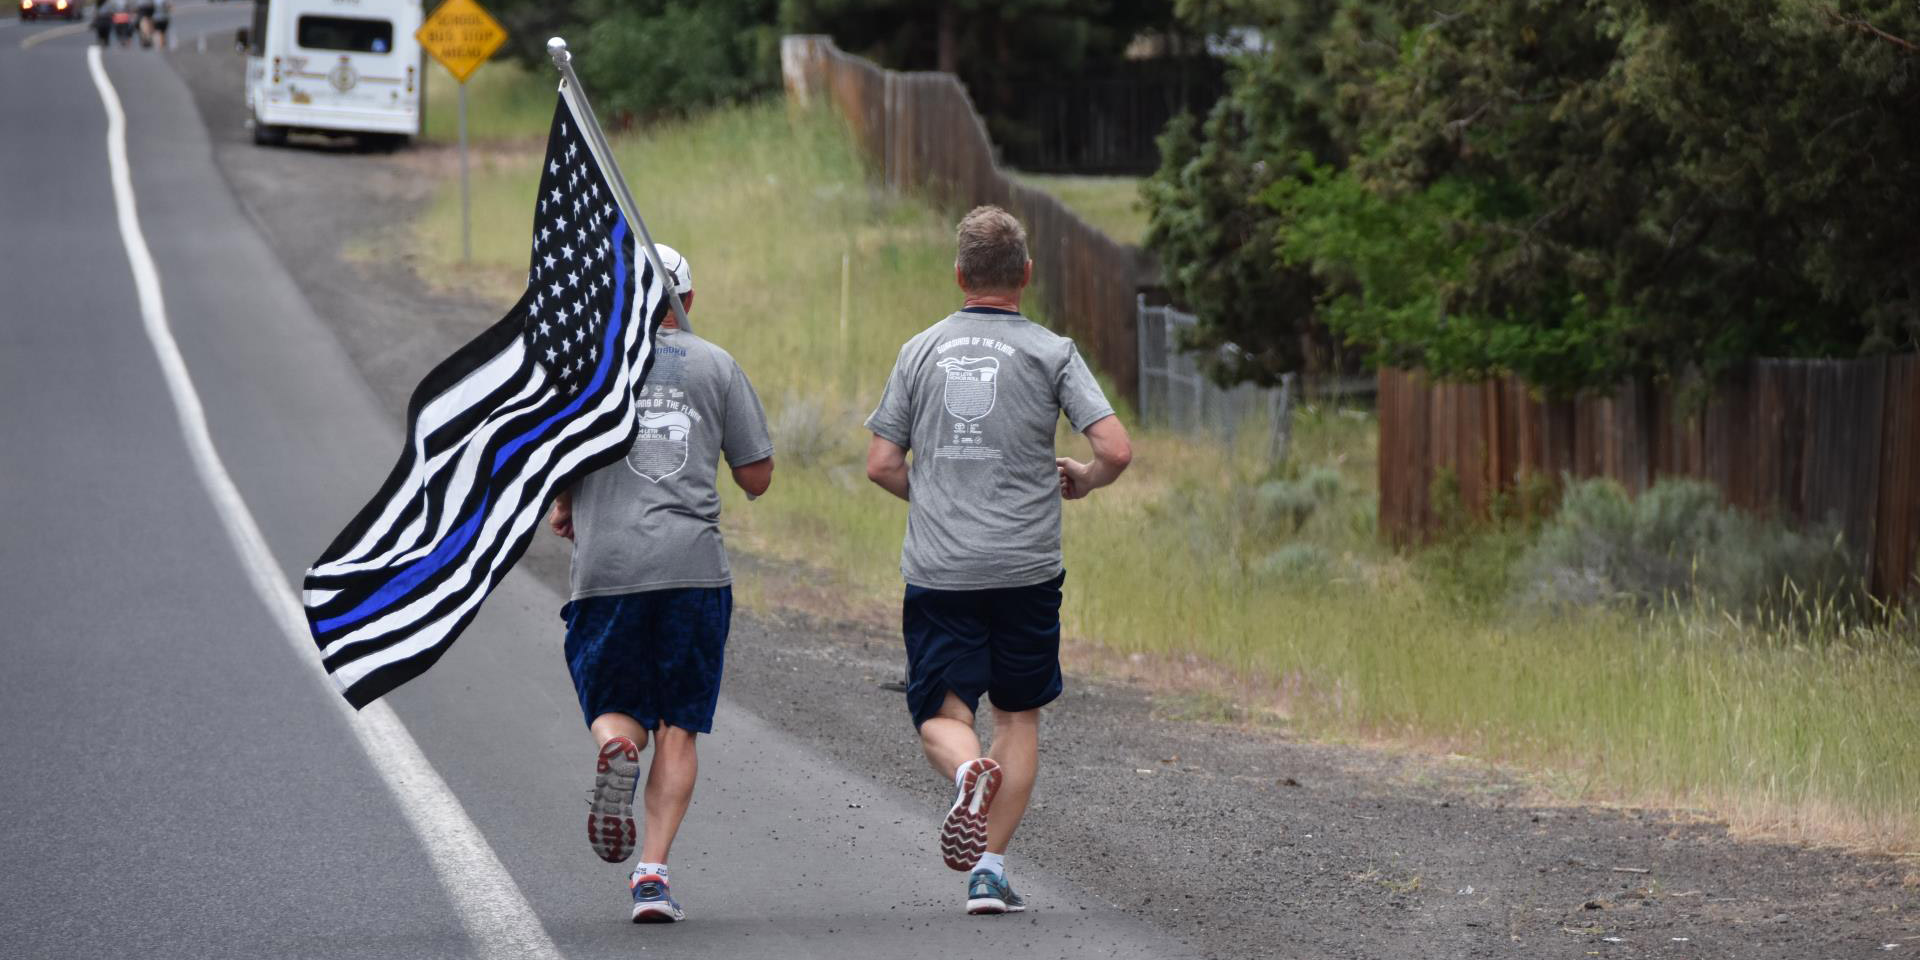 Officers running along road carrying Police Thin Blue Line flag